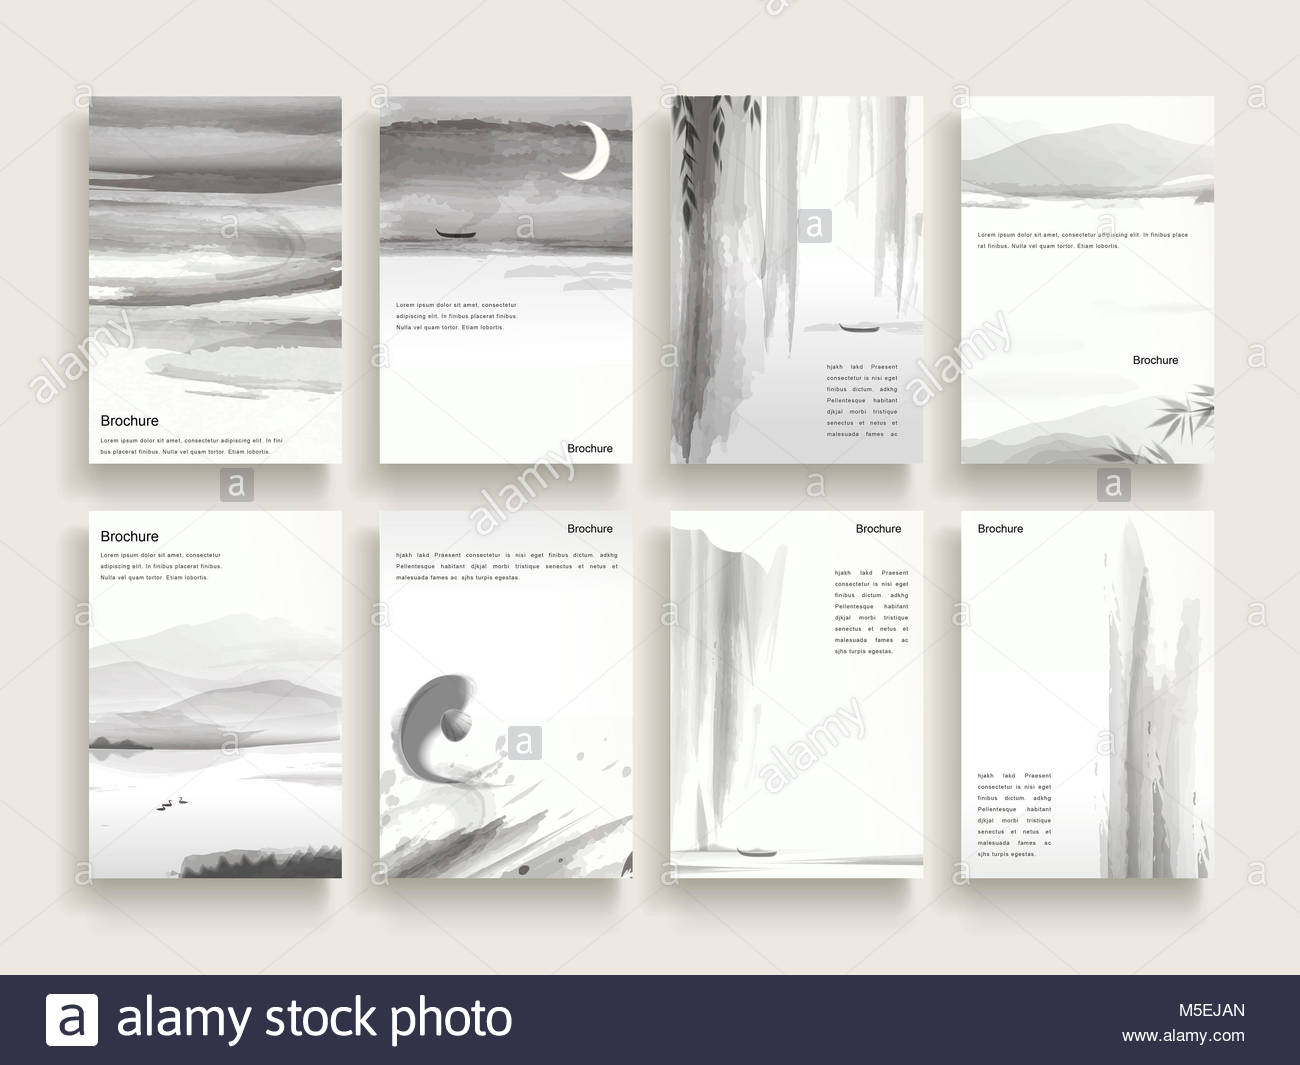 Elegant Brochure Template Design With Ink Brush Elements Stock Photo